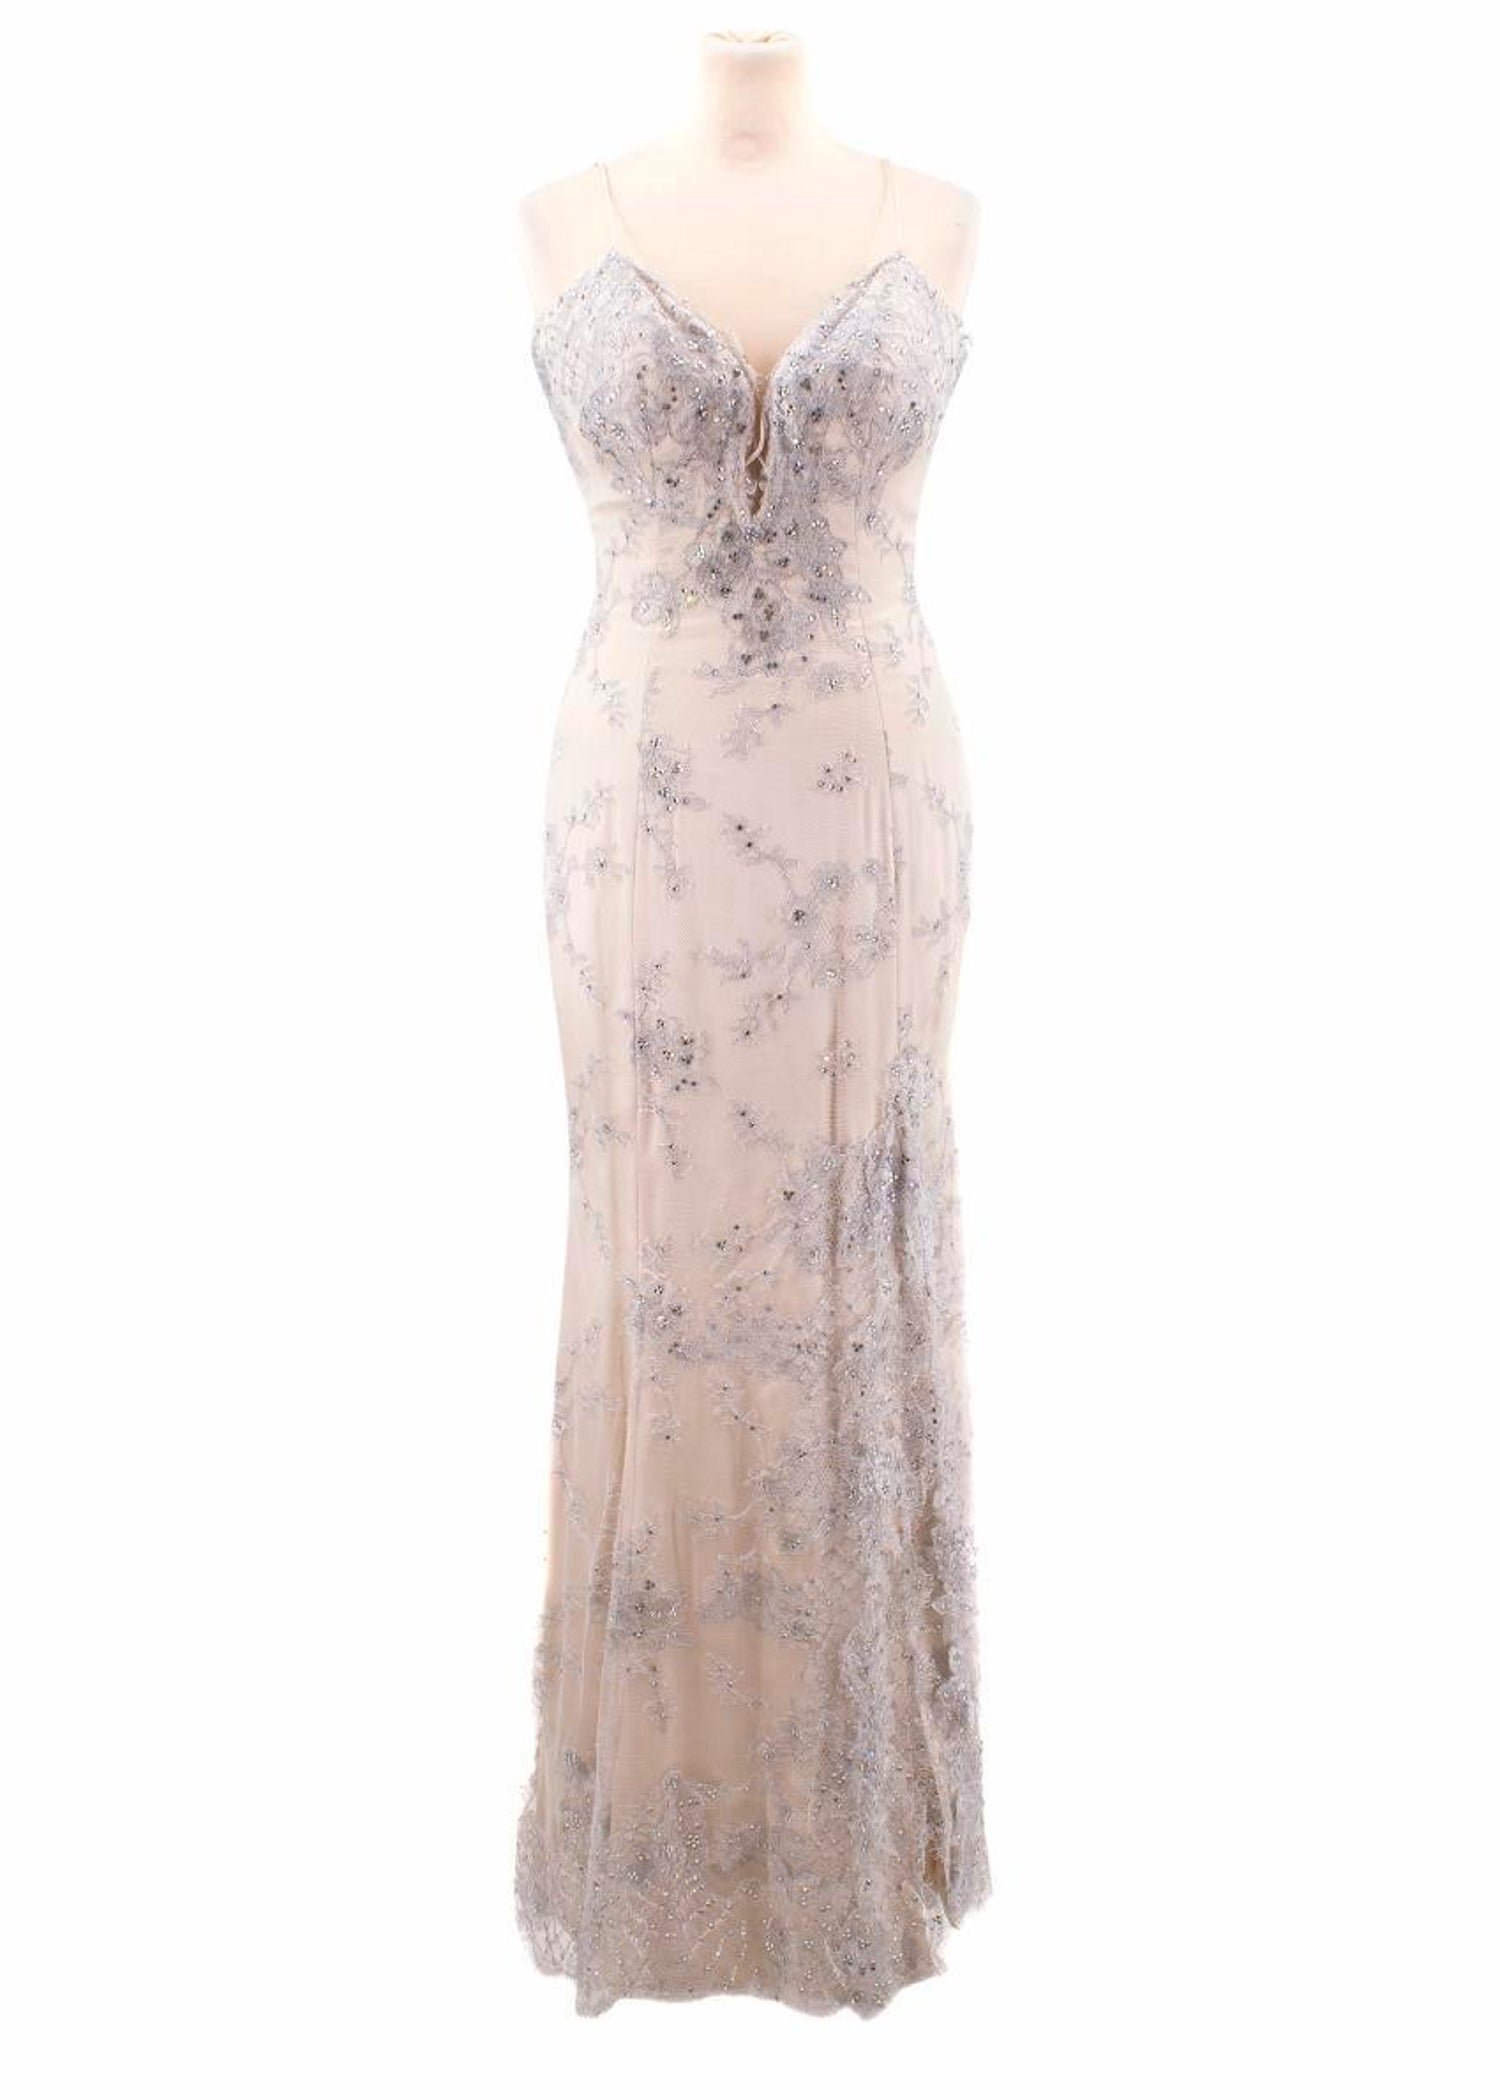 Baracci Haute Couture Lace And Crystals Embellished Gown Size S